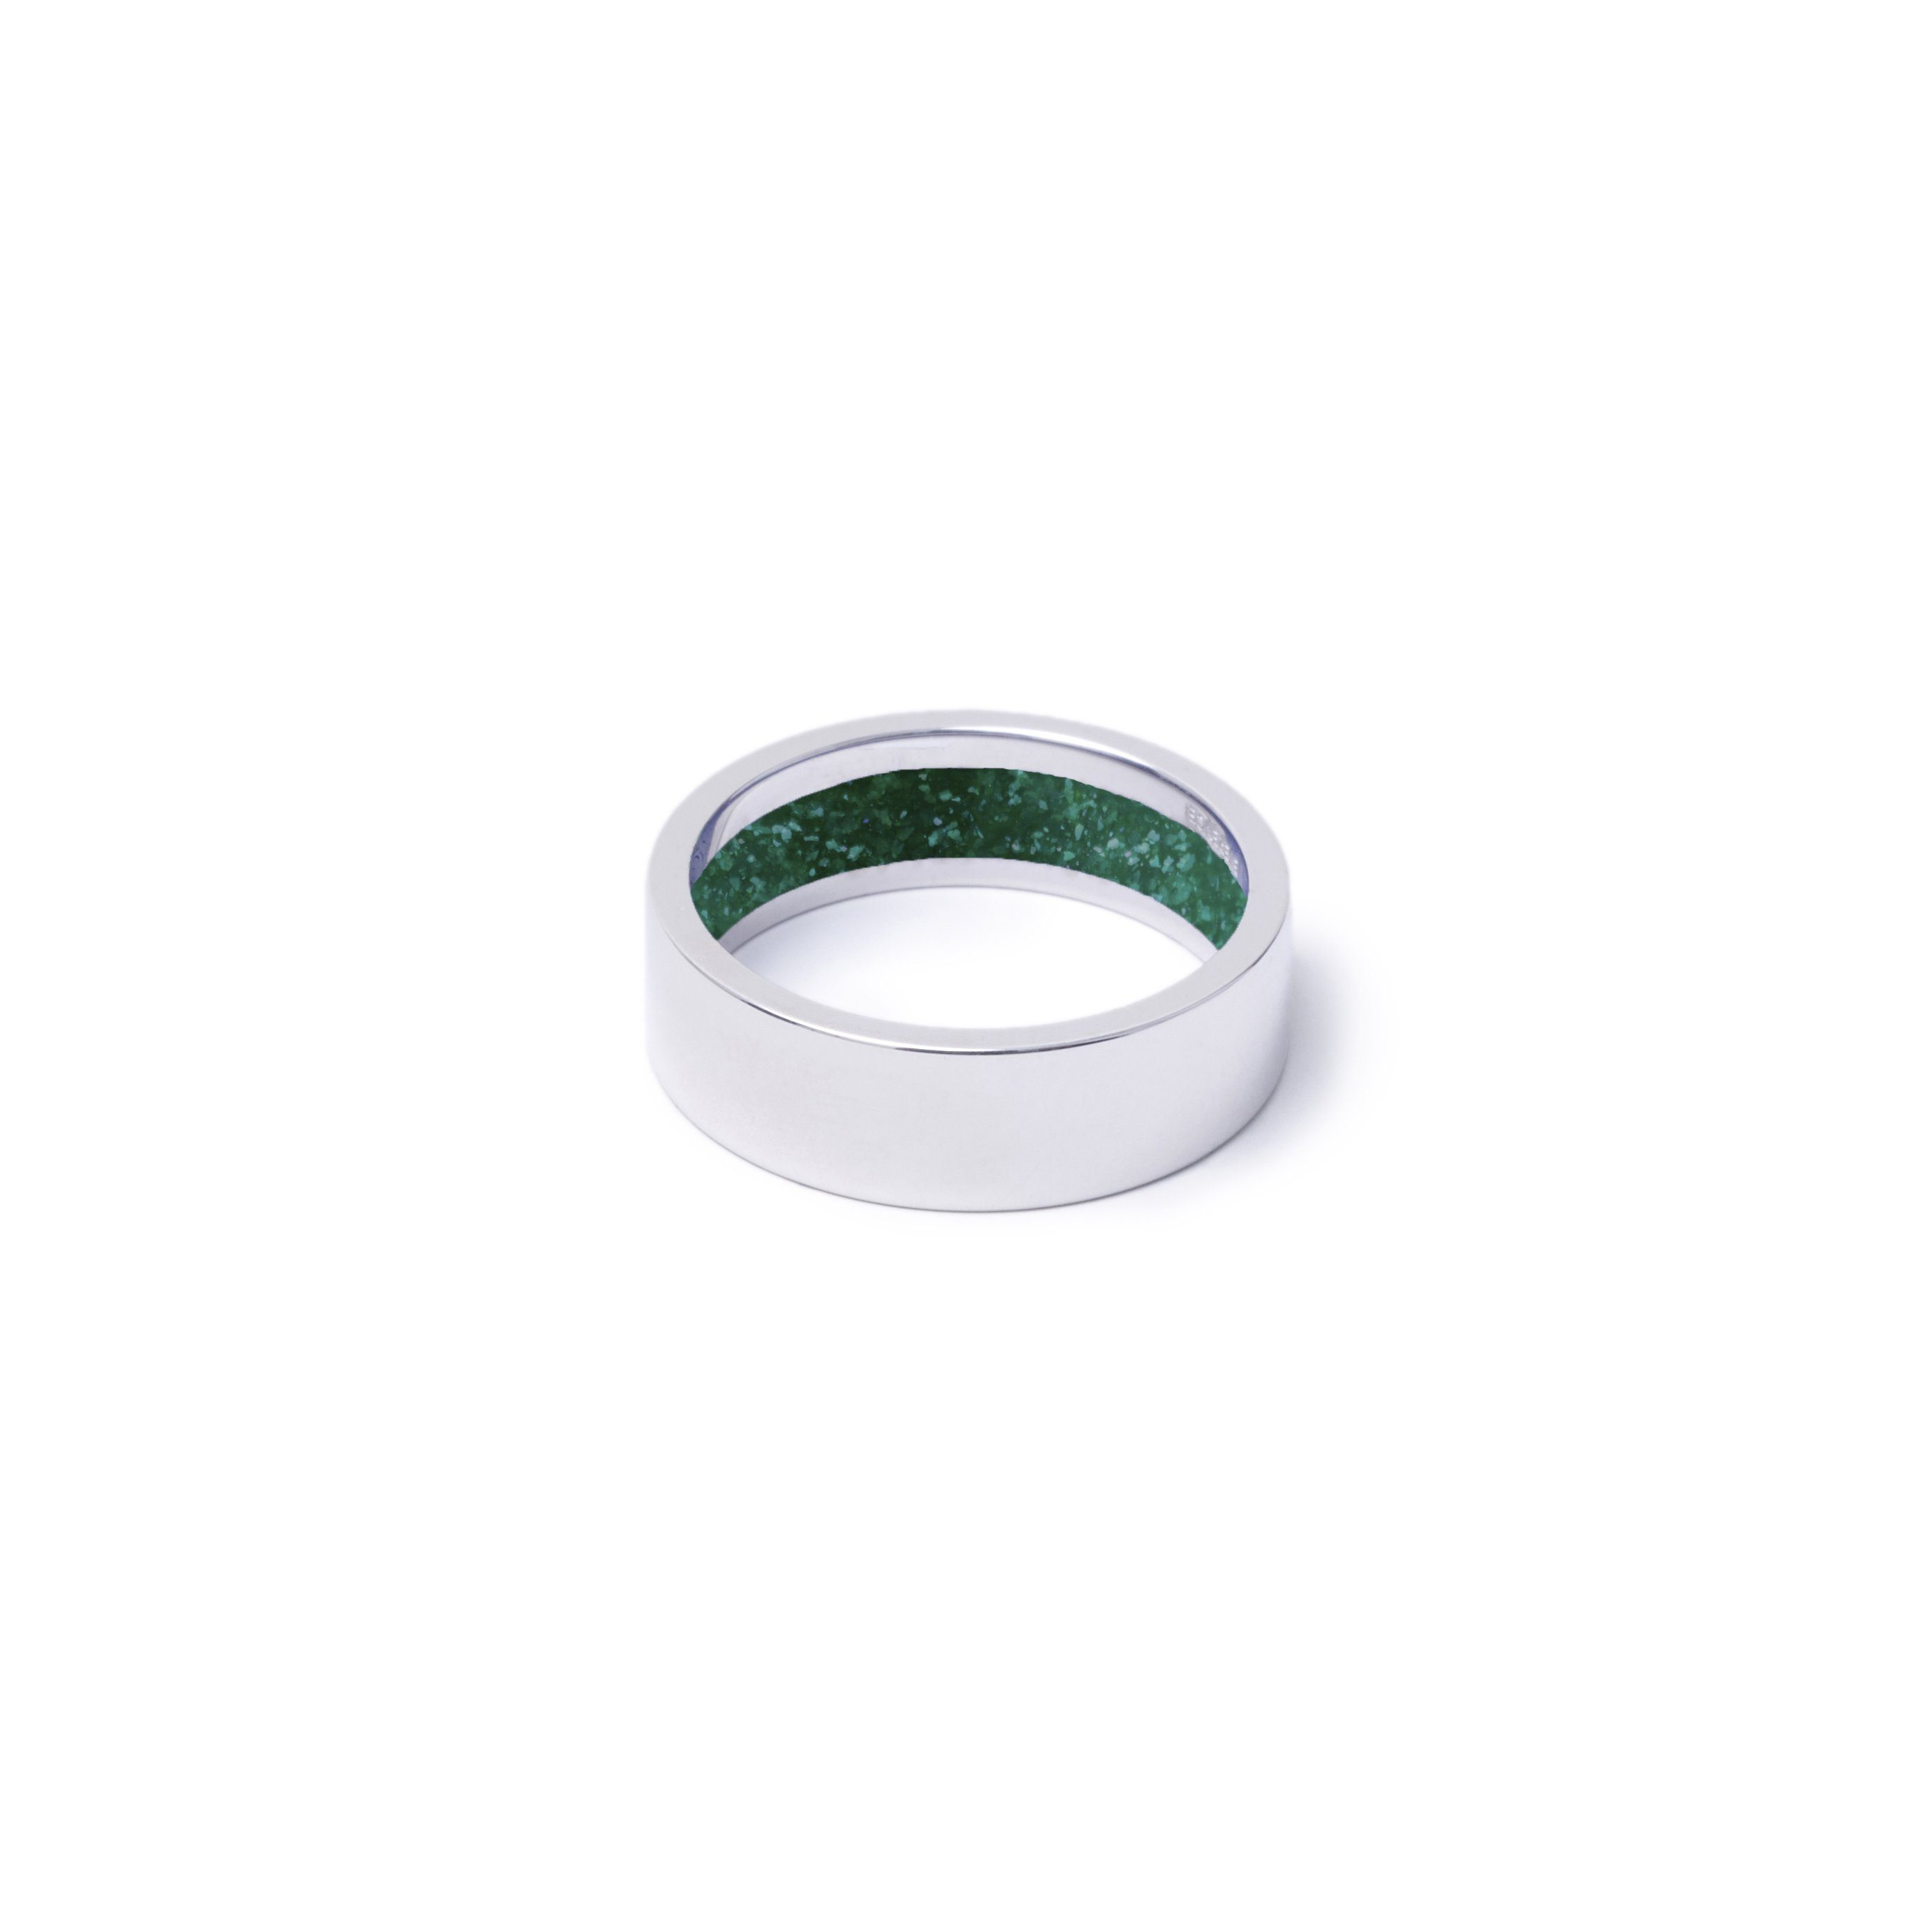 Everence Ring, 10k White Gold everence.life 6mm Emerald